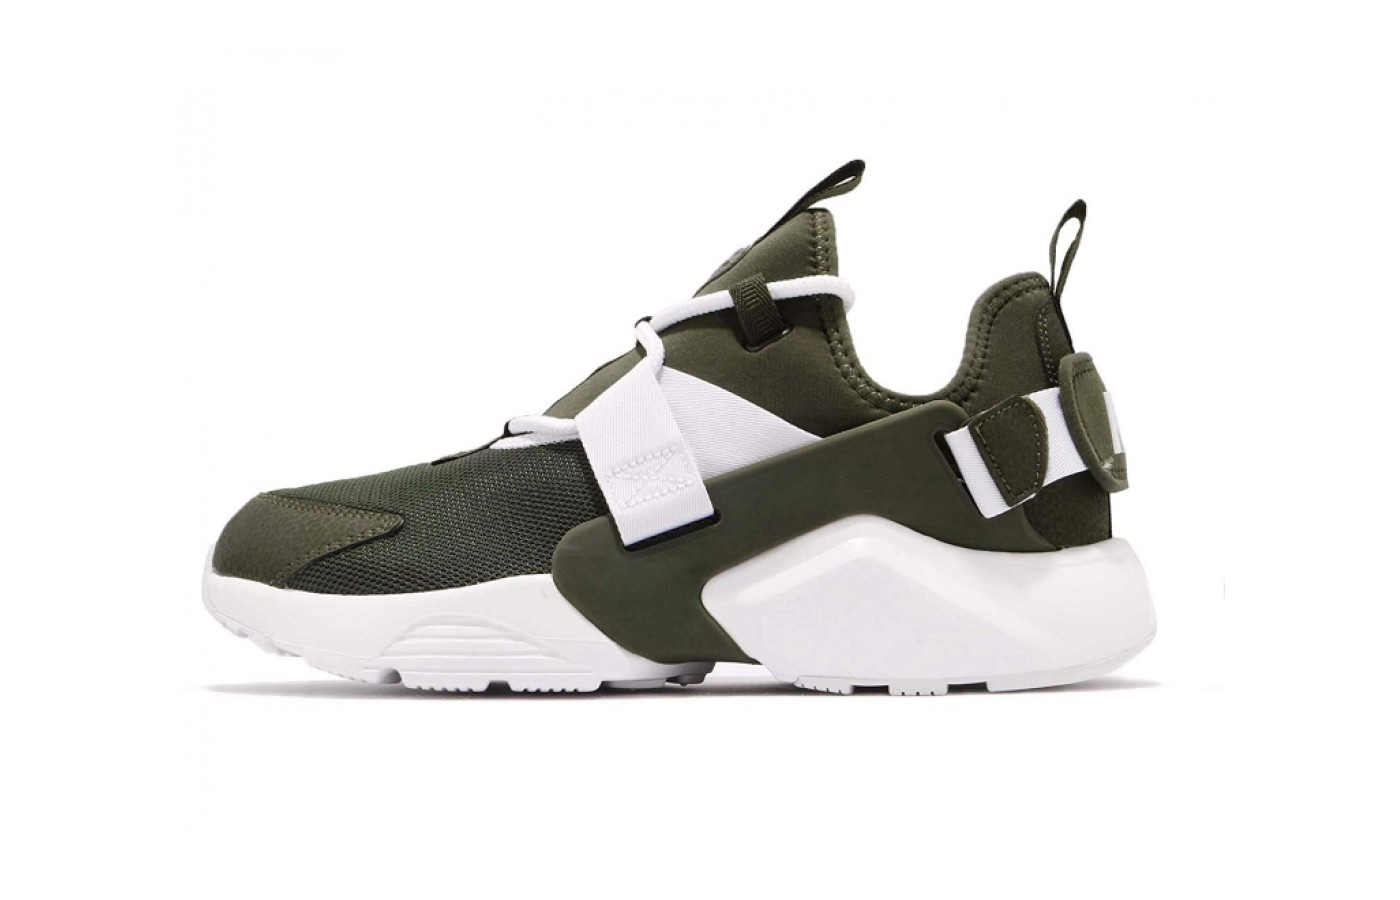 25f51cee96 Nike Air Huarache City Low Reviewed & Rated in 2019 | WalkJogRun